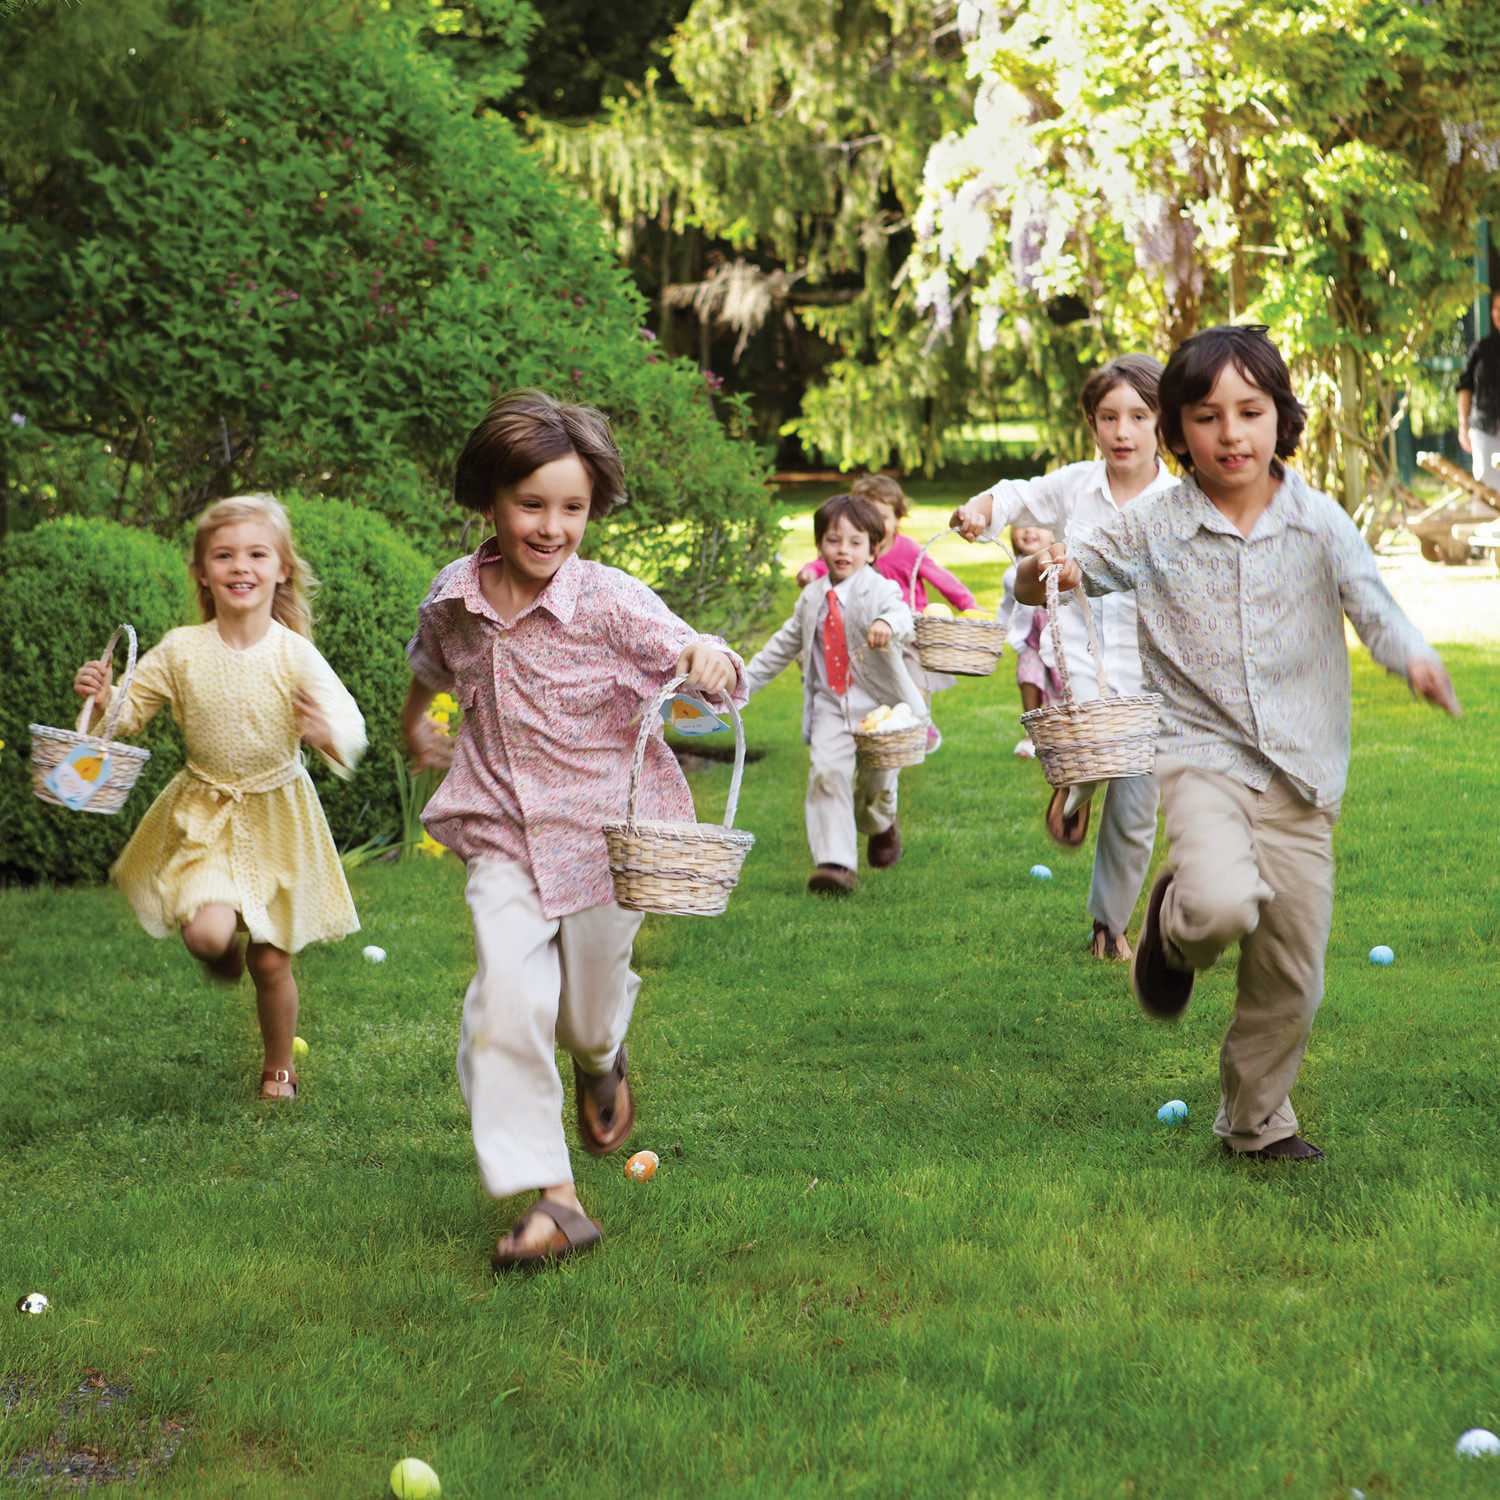 7 Easter Egg Hunt Games To Keep Lil' Bunnies Hoppy